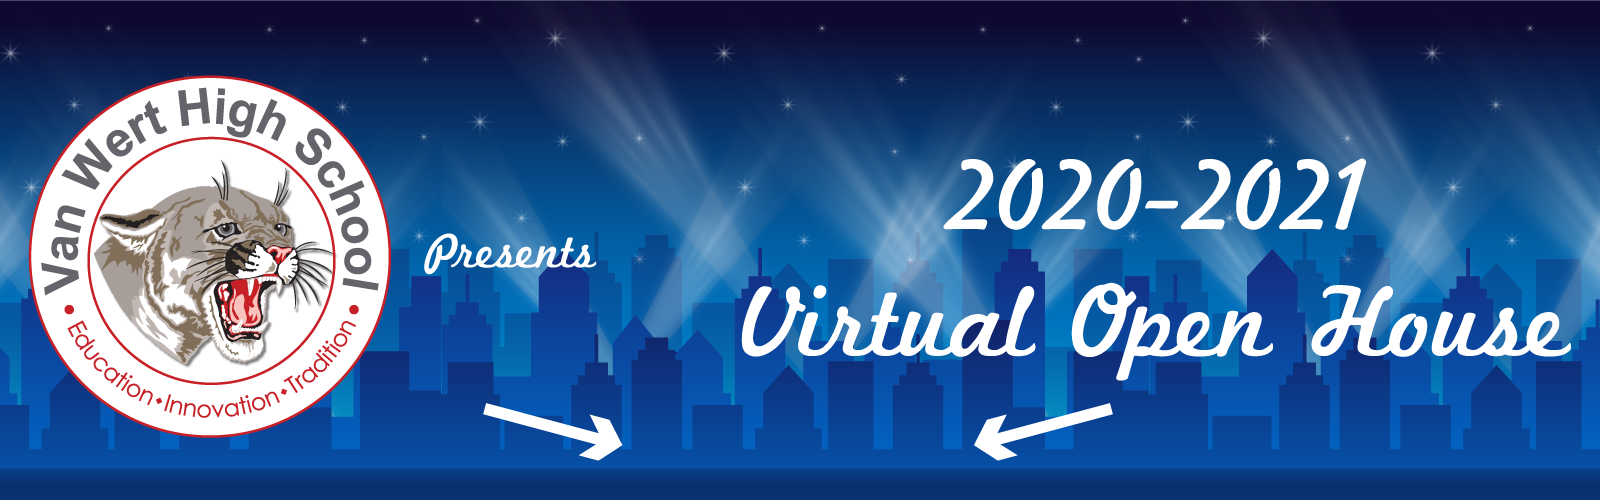 VWHS Presents 2020-2021 Virtual Open House with a graphic of a city skyline and spotlights